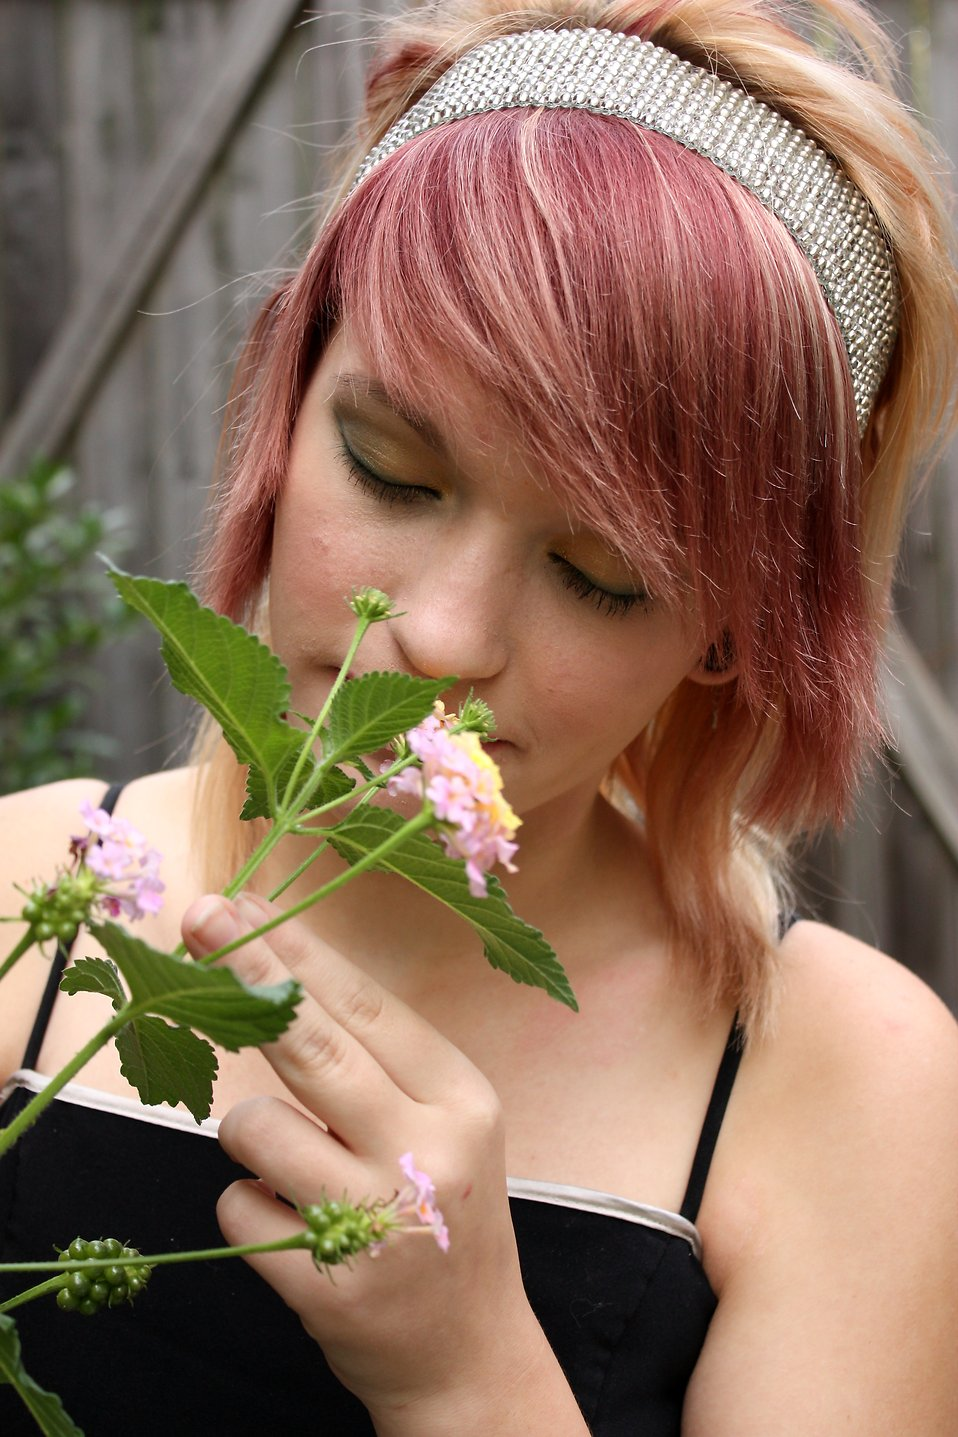 A beautiful young girl smelling flowers : Free Stock Photo